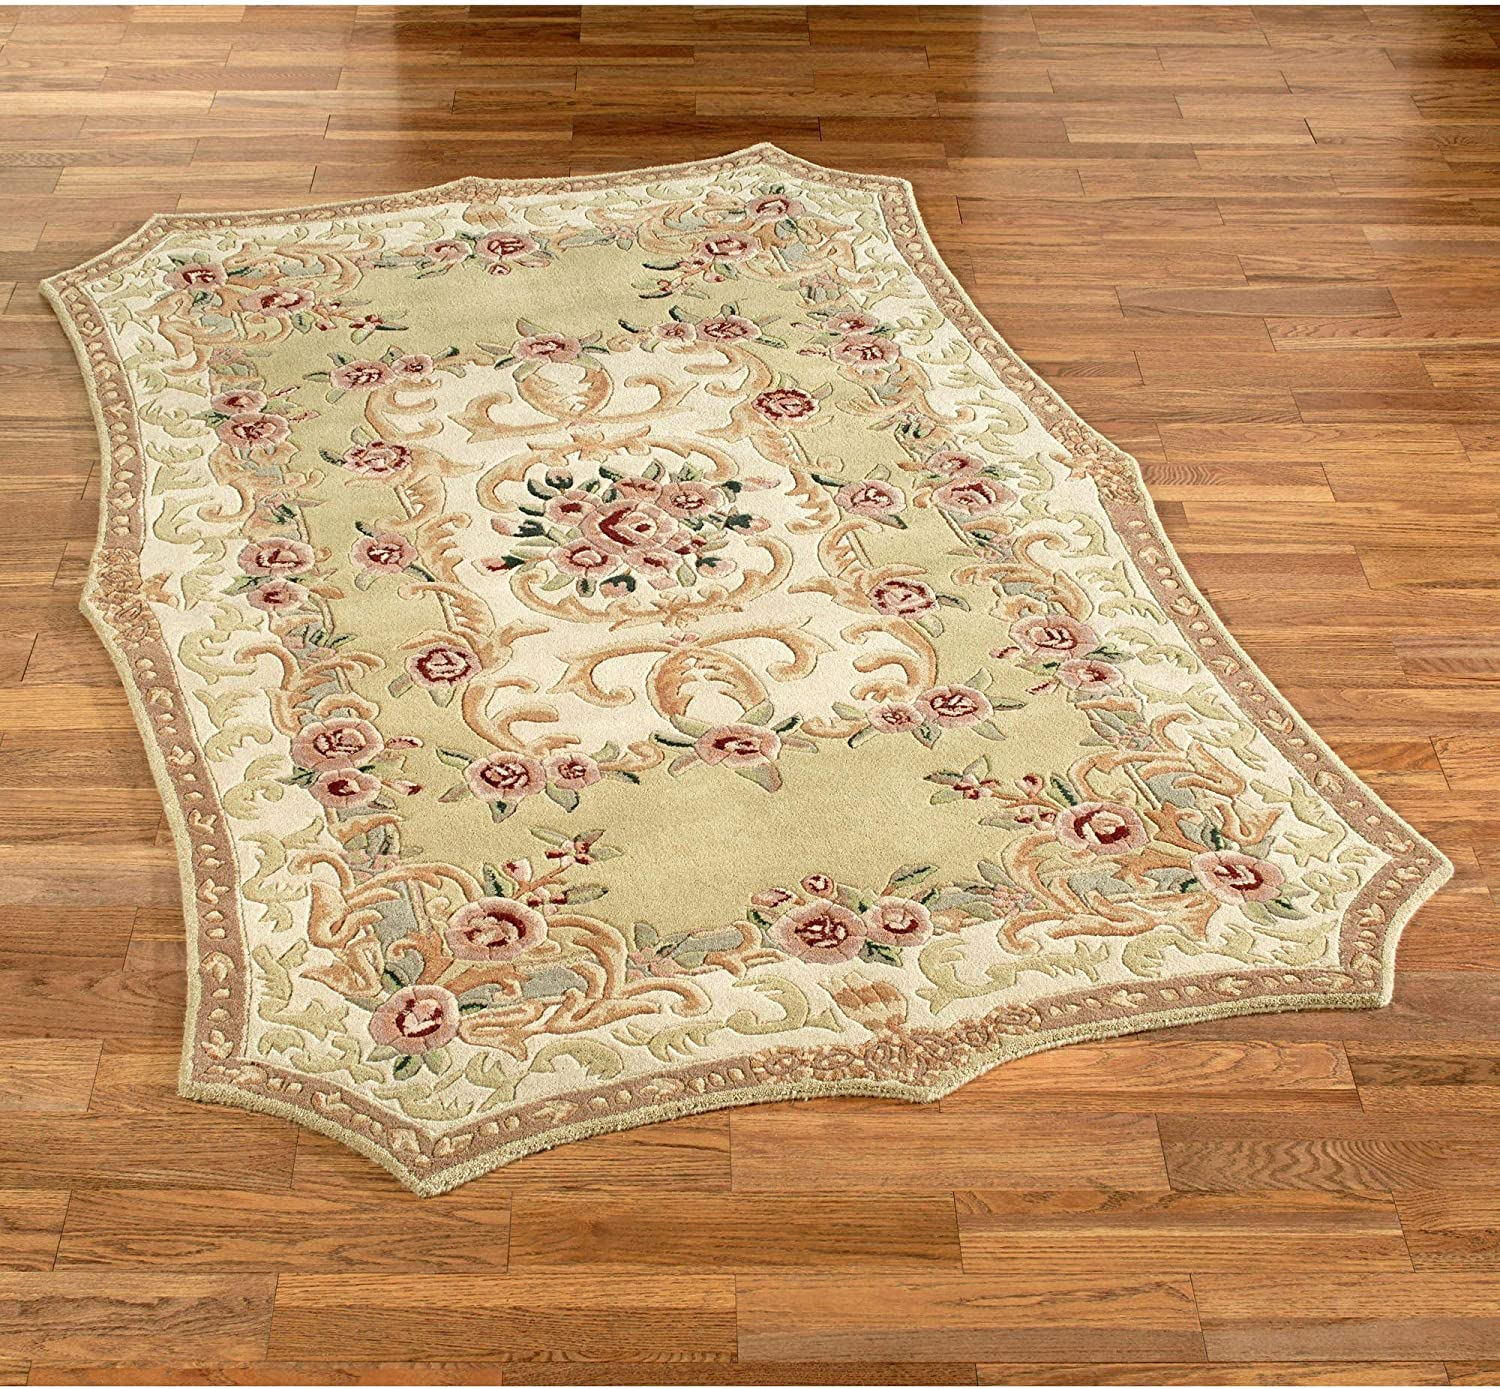 Vintage Aubusson Area Rug Cream Furniture Decor